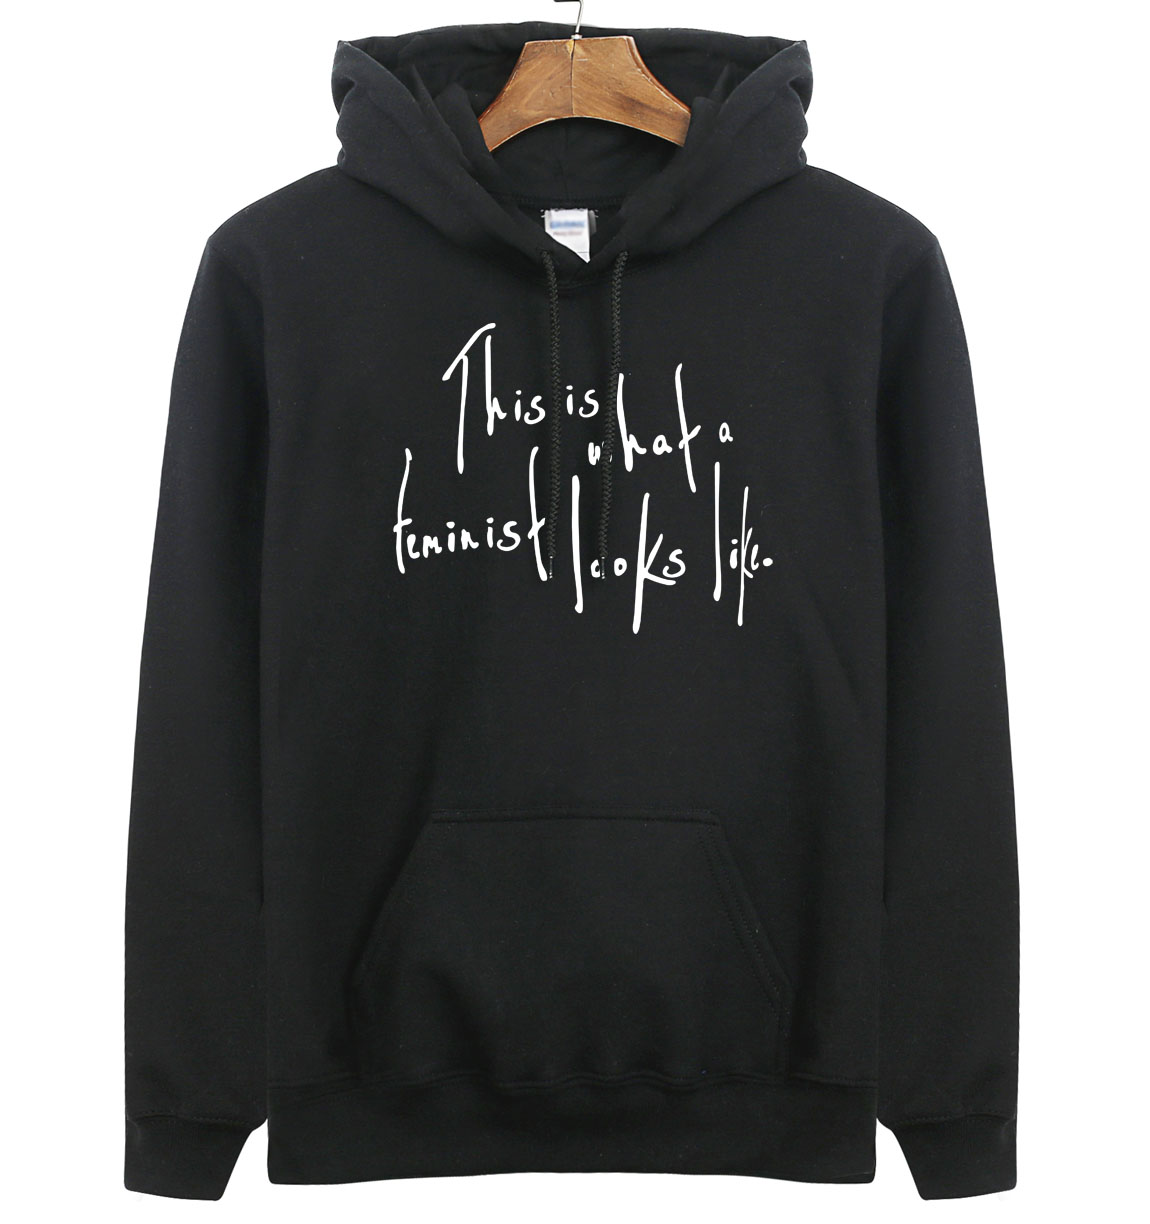 This Is What a Feminist Looks Like Funny Letter Print Sweatshirts 2019 Spring Hoody For Men Winter Fleece Hoodie Harajuku Kpop